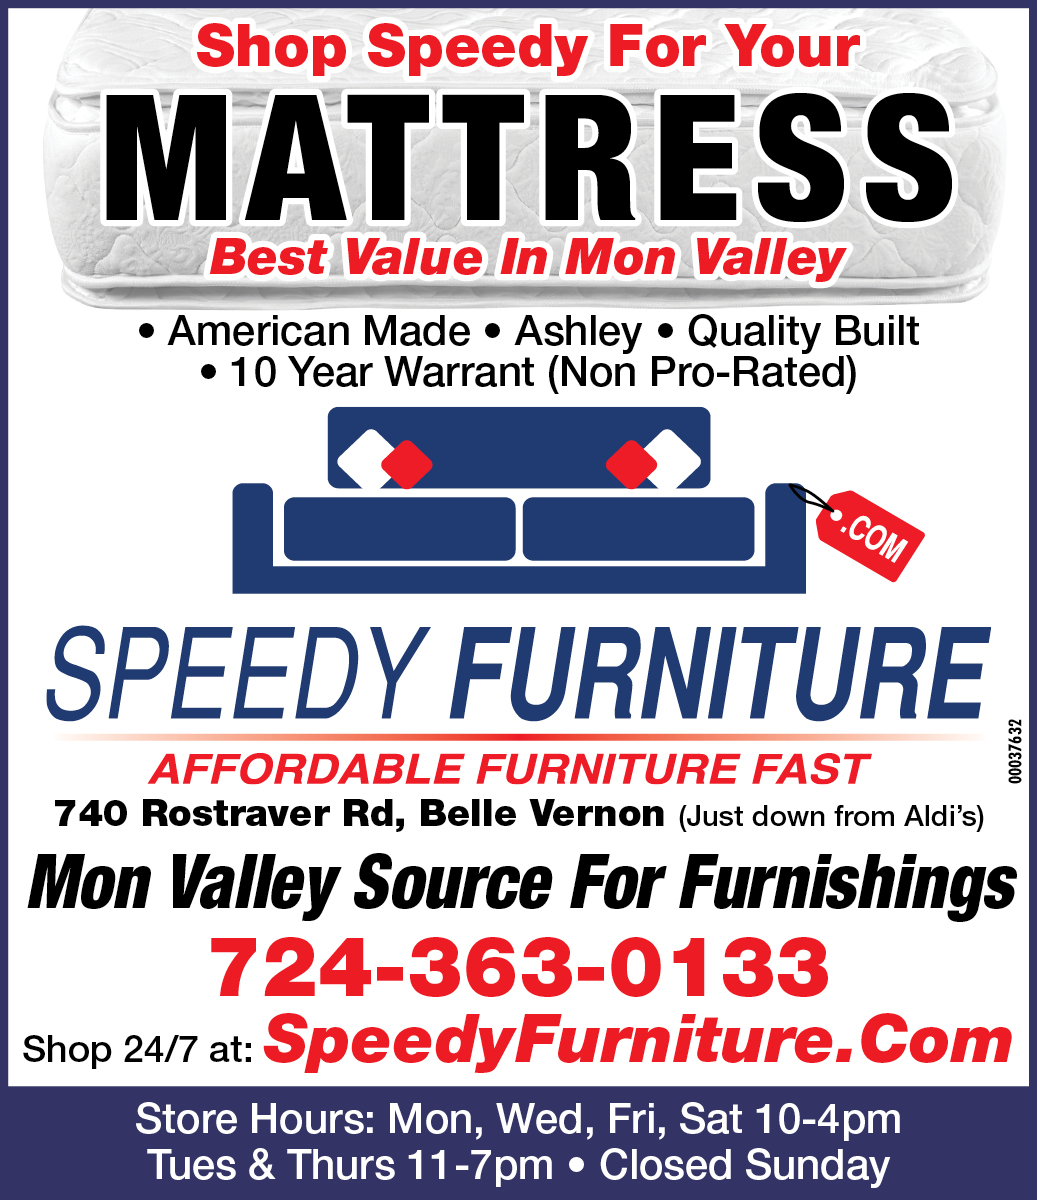 00037632_Speedy Furniture_2x4